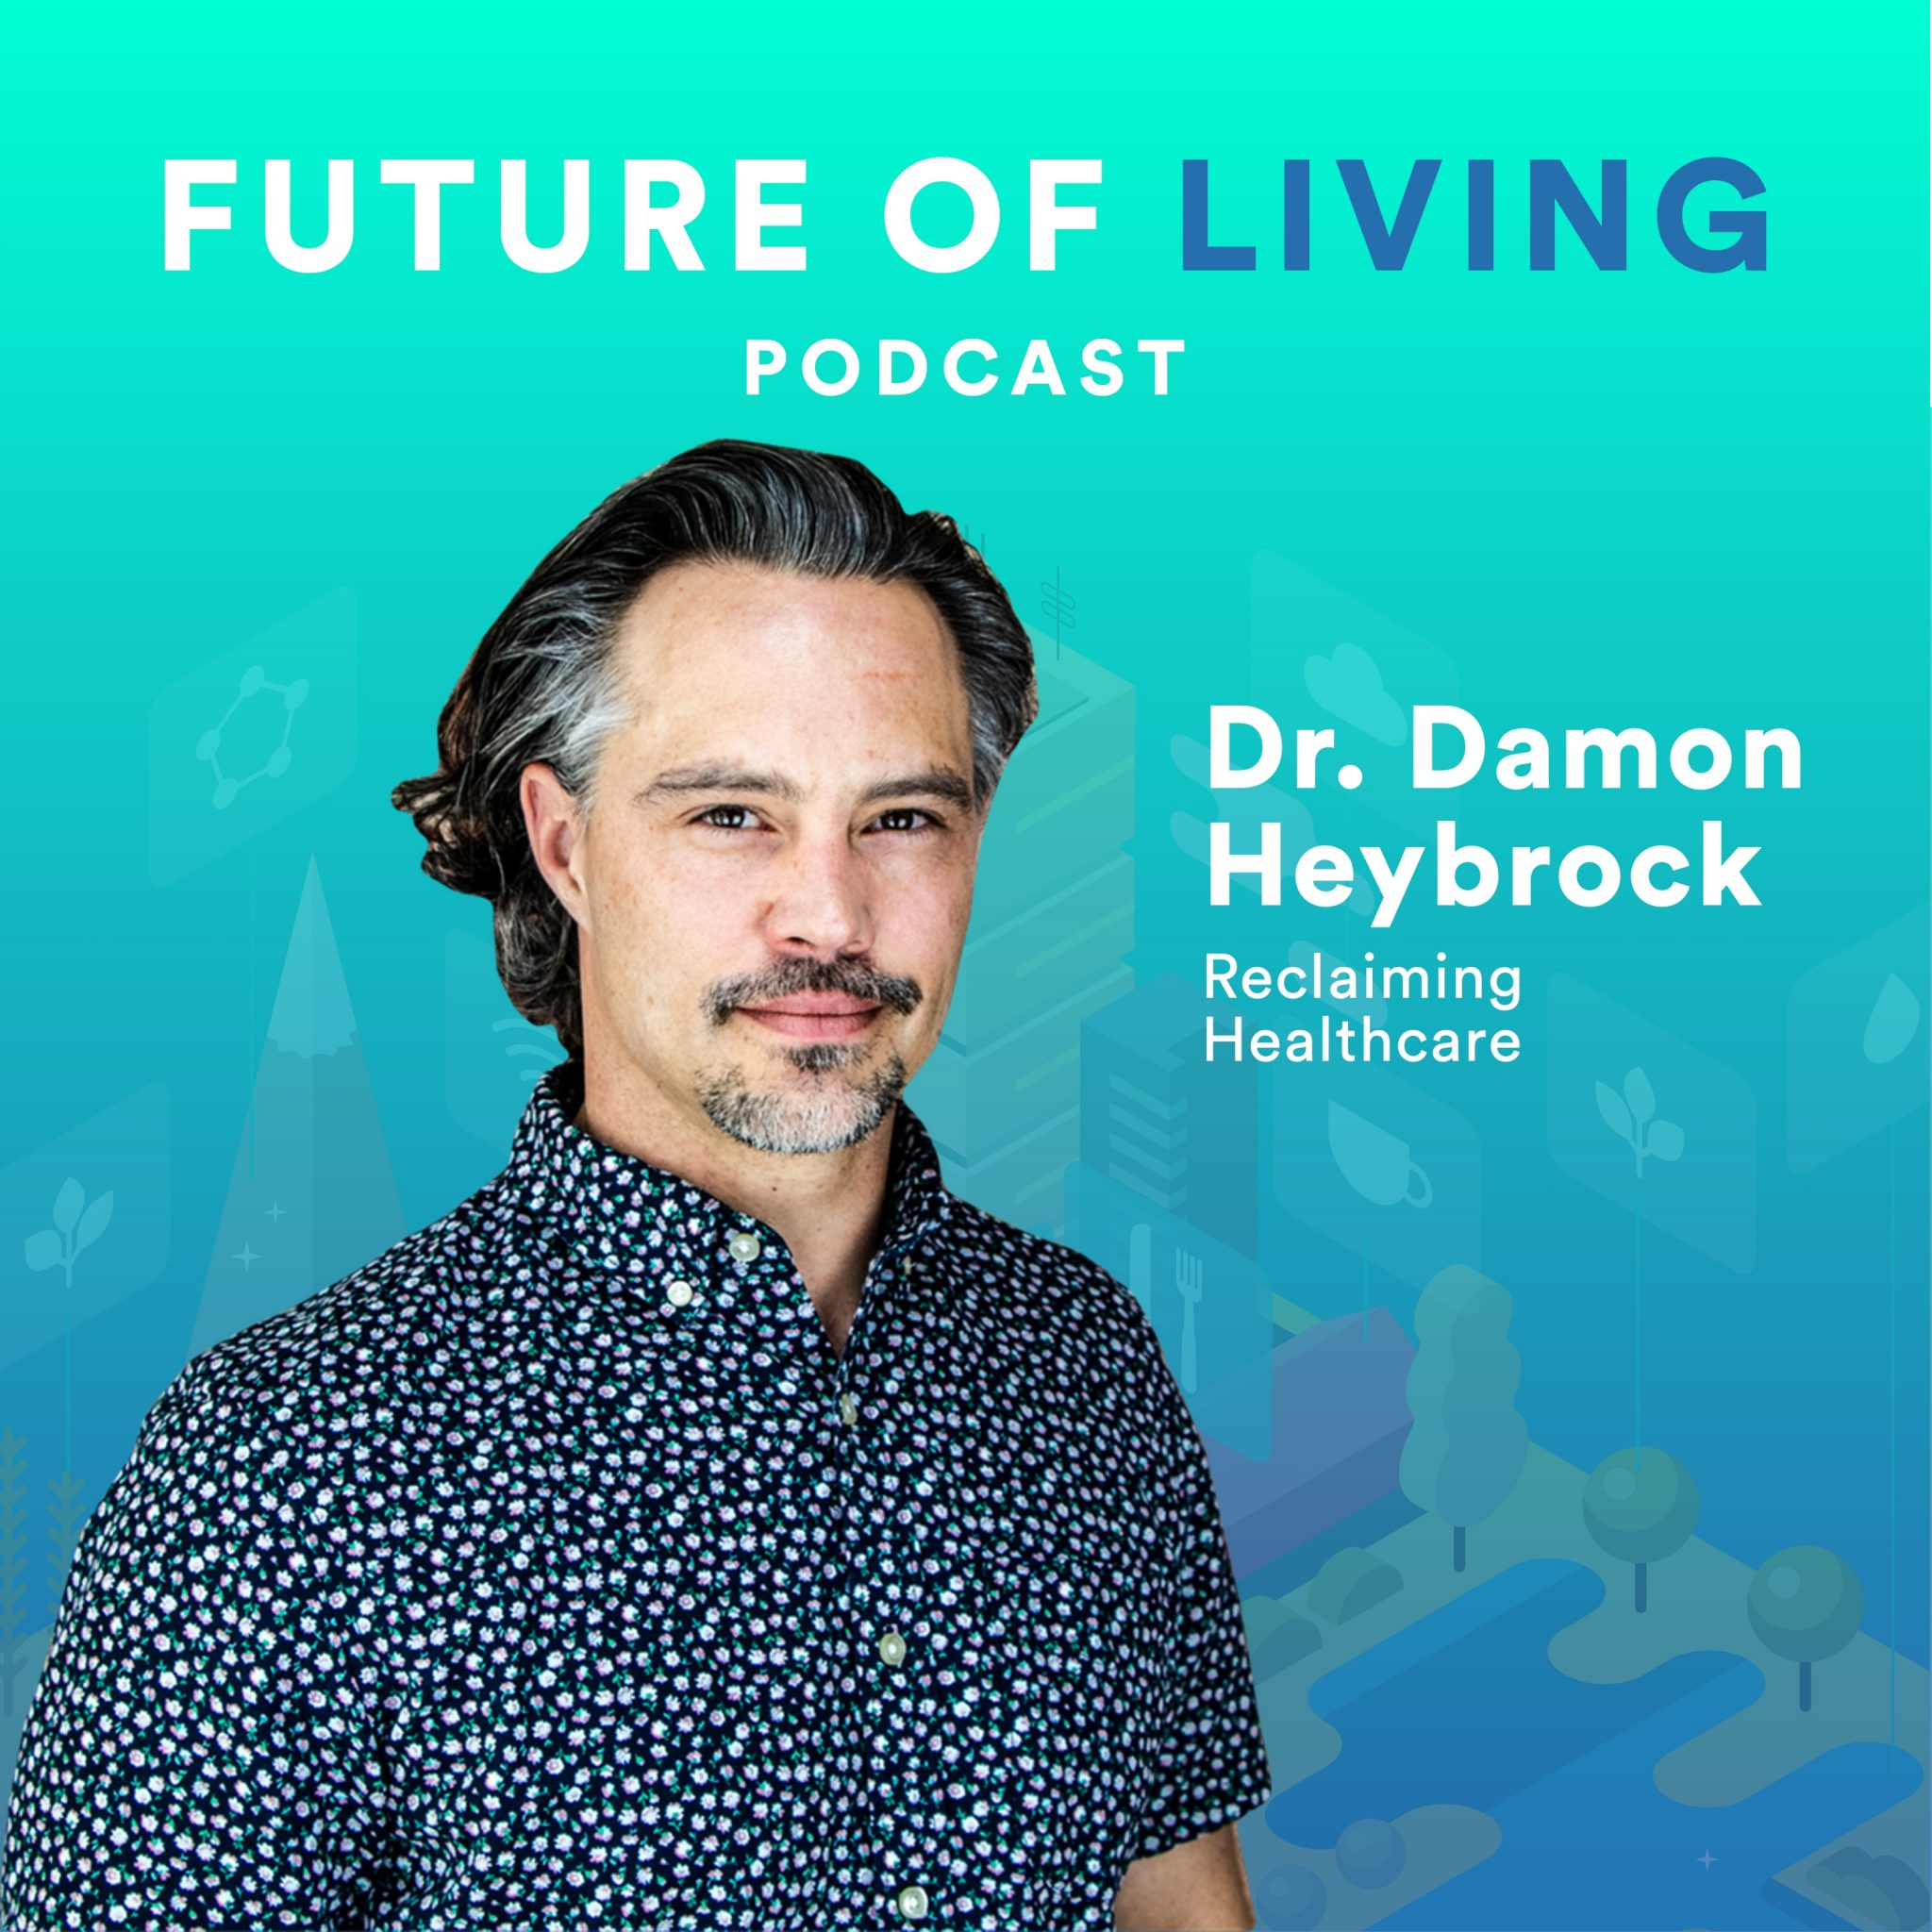 Dr-Damon-Heybrock-Direct-Primary-Care-Health-Studio-KC-Future-Of-Living